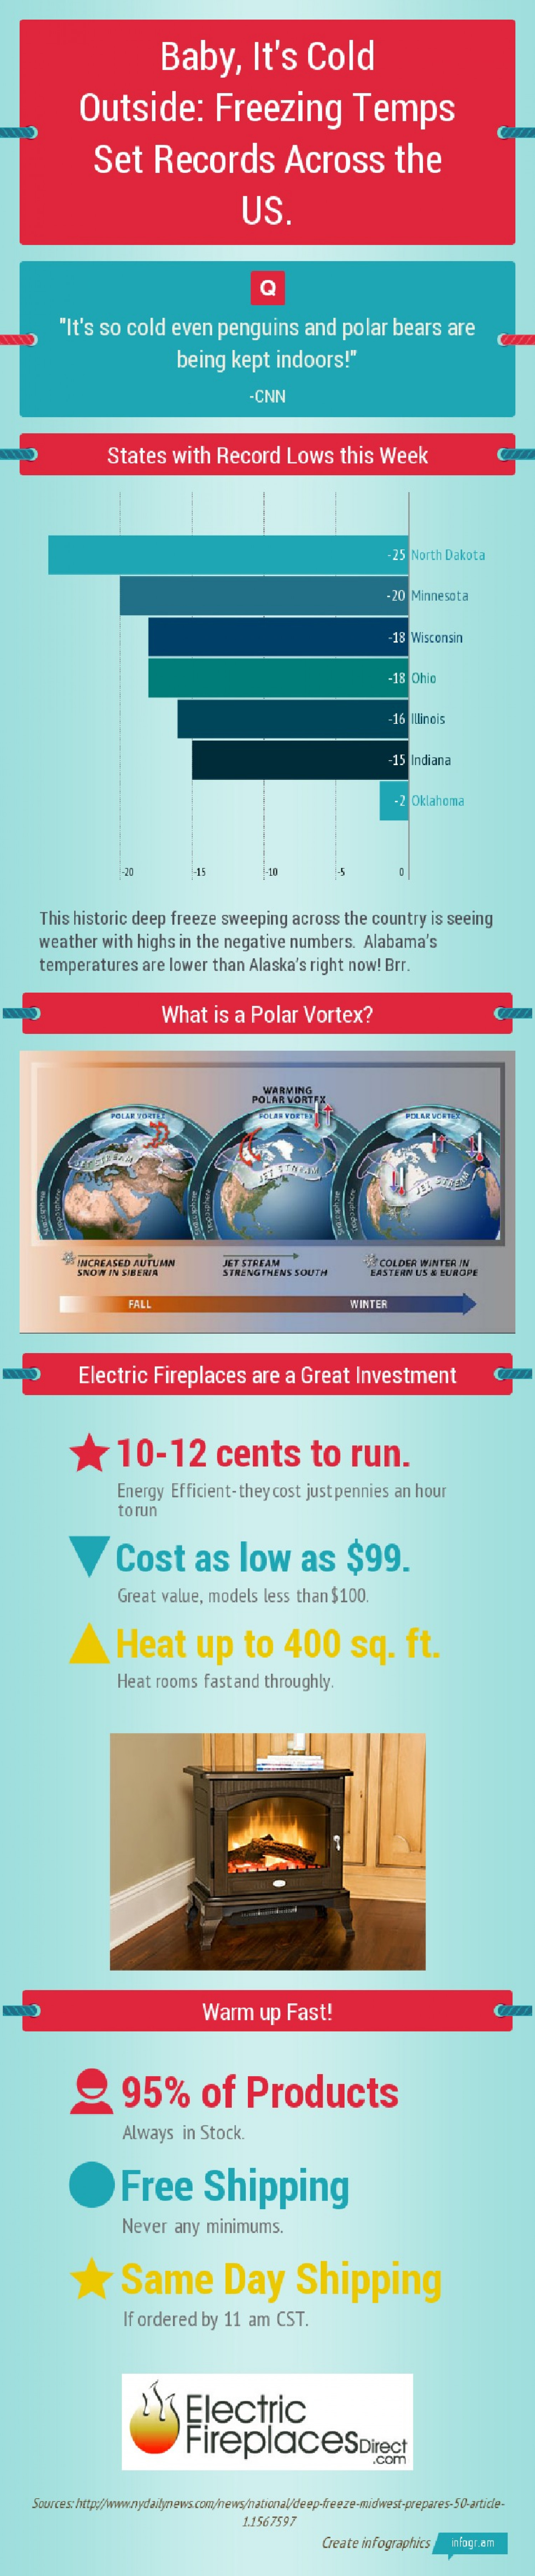 Baby it's Cold Outside: Freezing Temps set Record Lows across the US Infographic